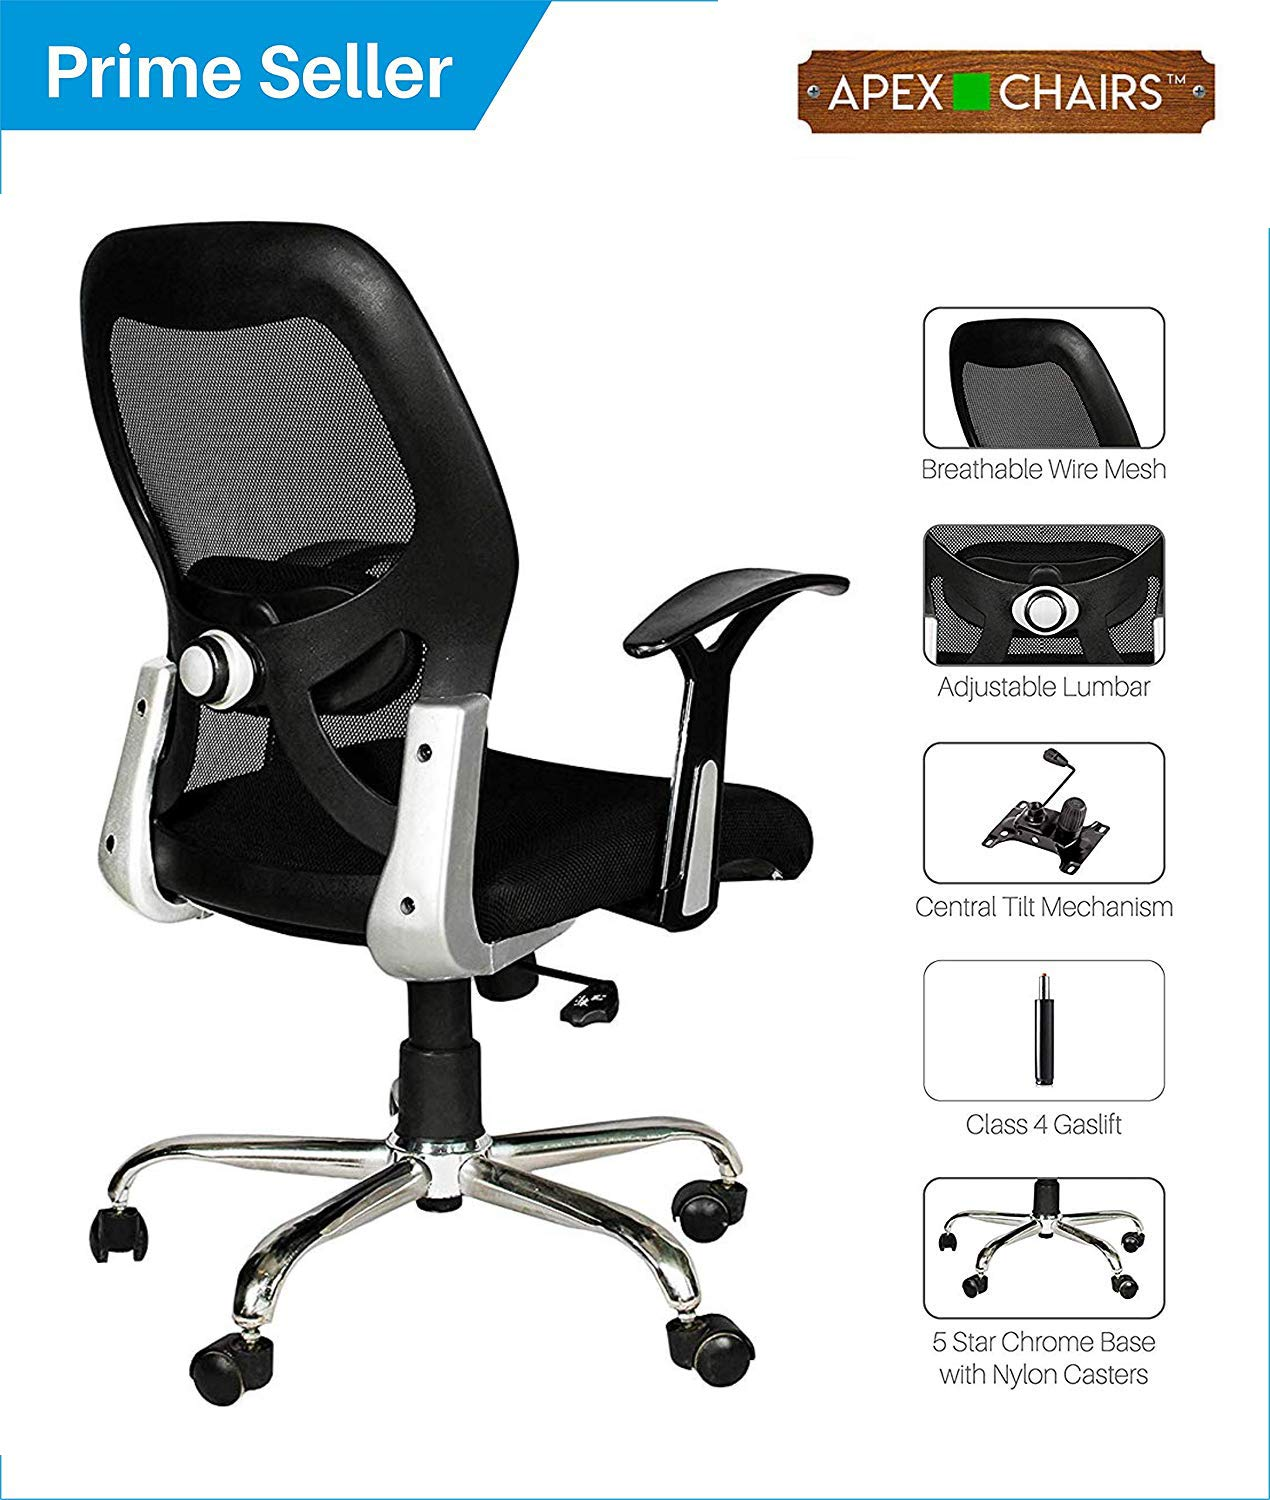 Apex AM-5002 Apollo Medium Back Office Chair